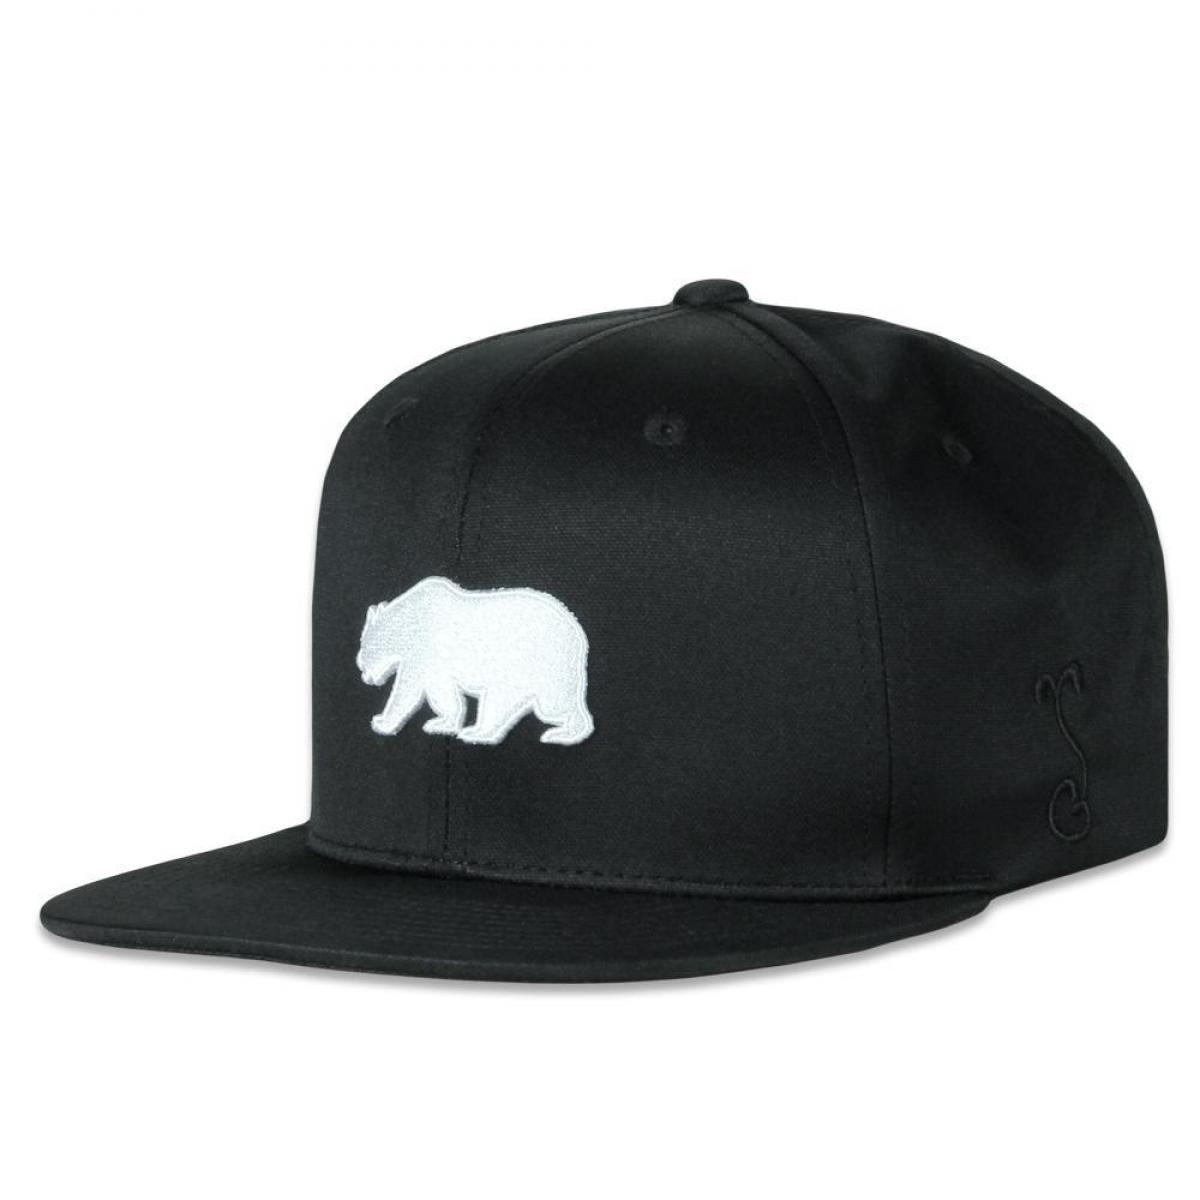 Dri-Bear Polar Black Pro Fit Snapback Hat